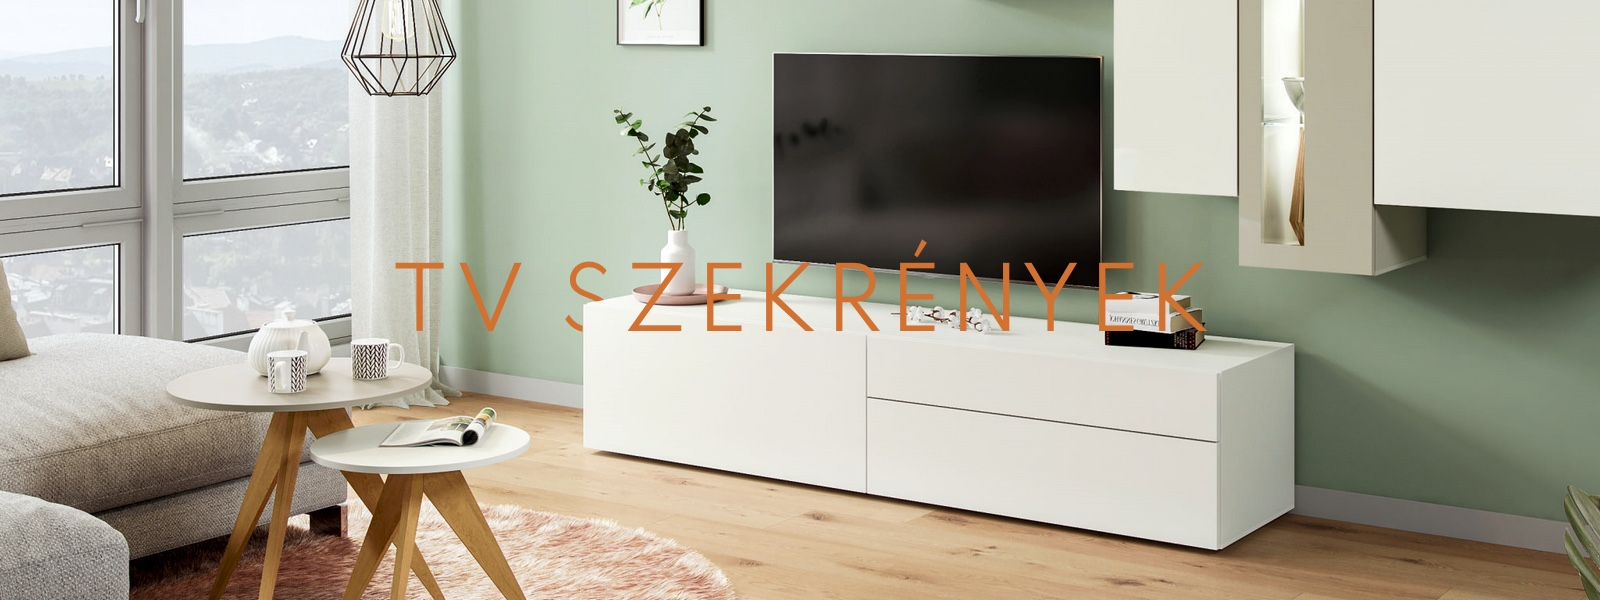 innoshop-tv-szekrenyek-tv-cabinets.jpg